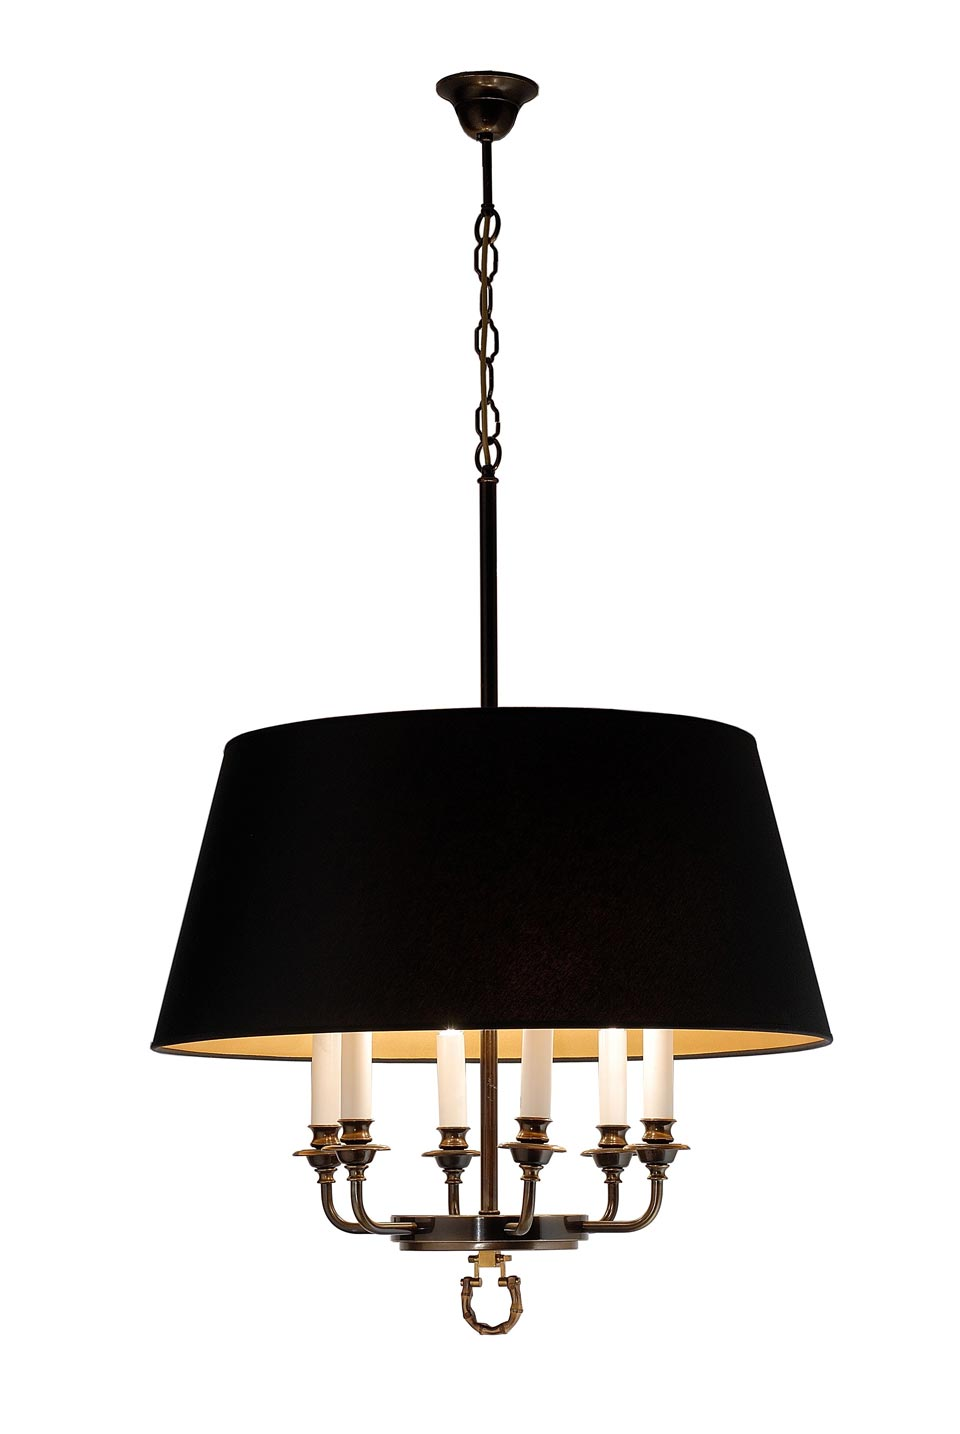 Juliette suspension chandelier bronze. Estro.